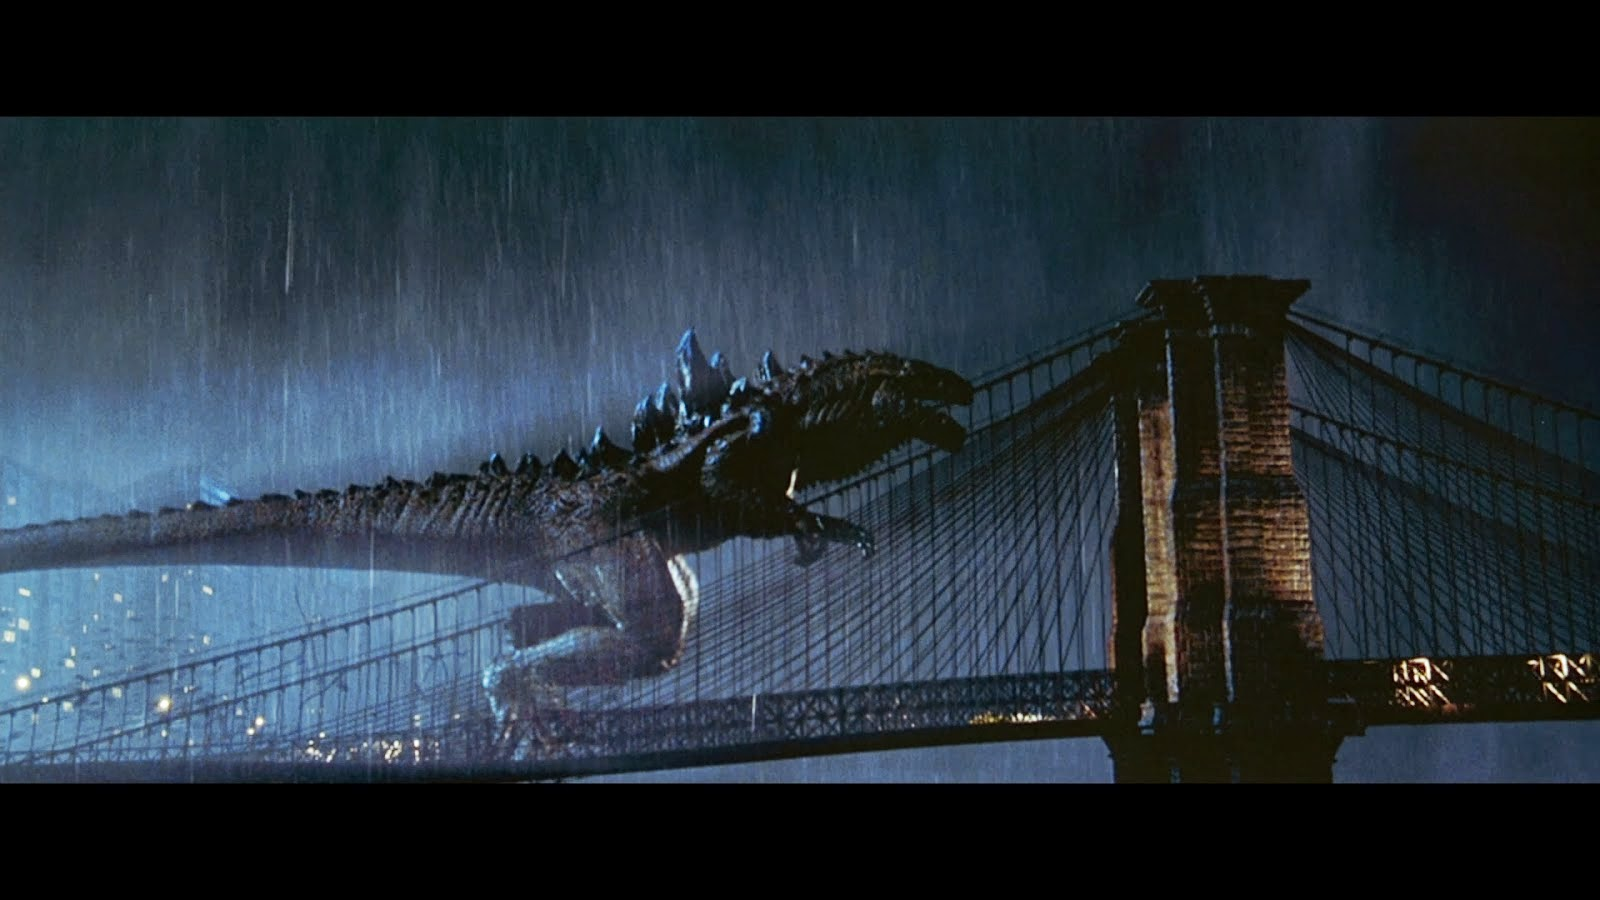 Godzilla-Bridge-Movies-Wallpaper-in-HD.jpg